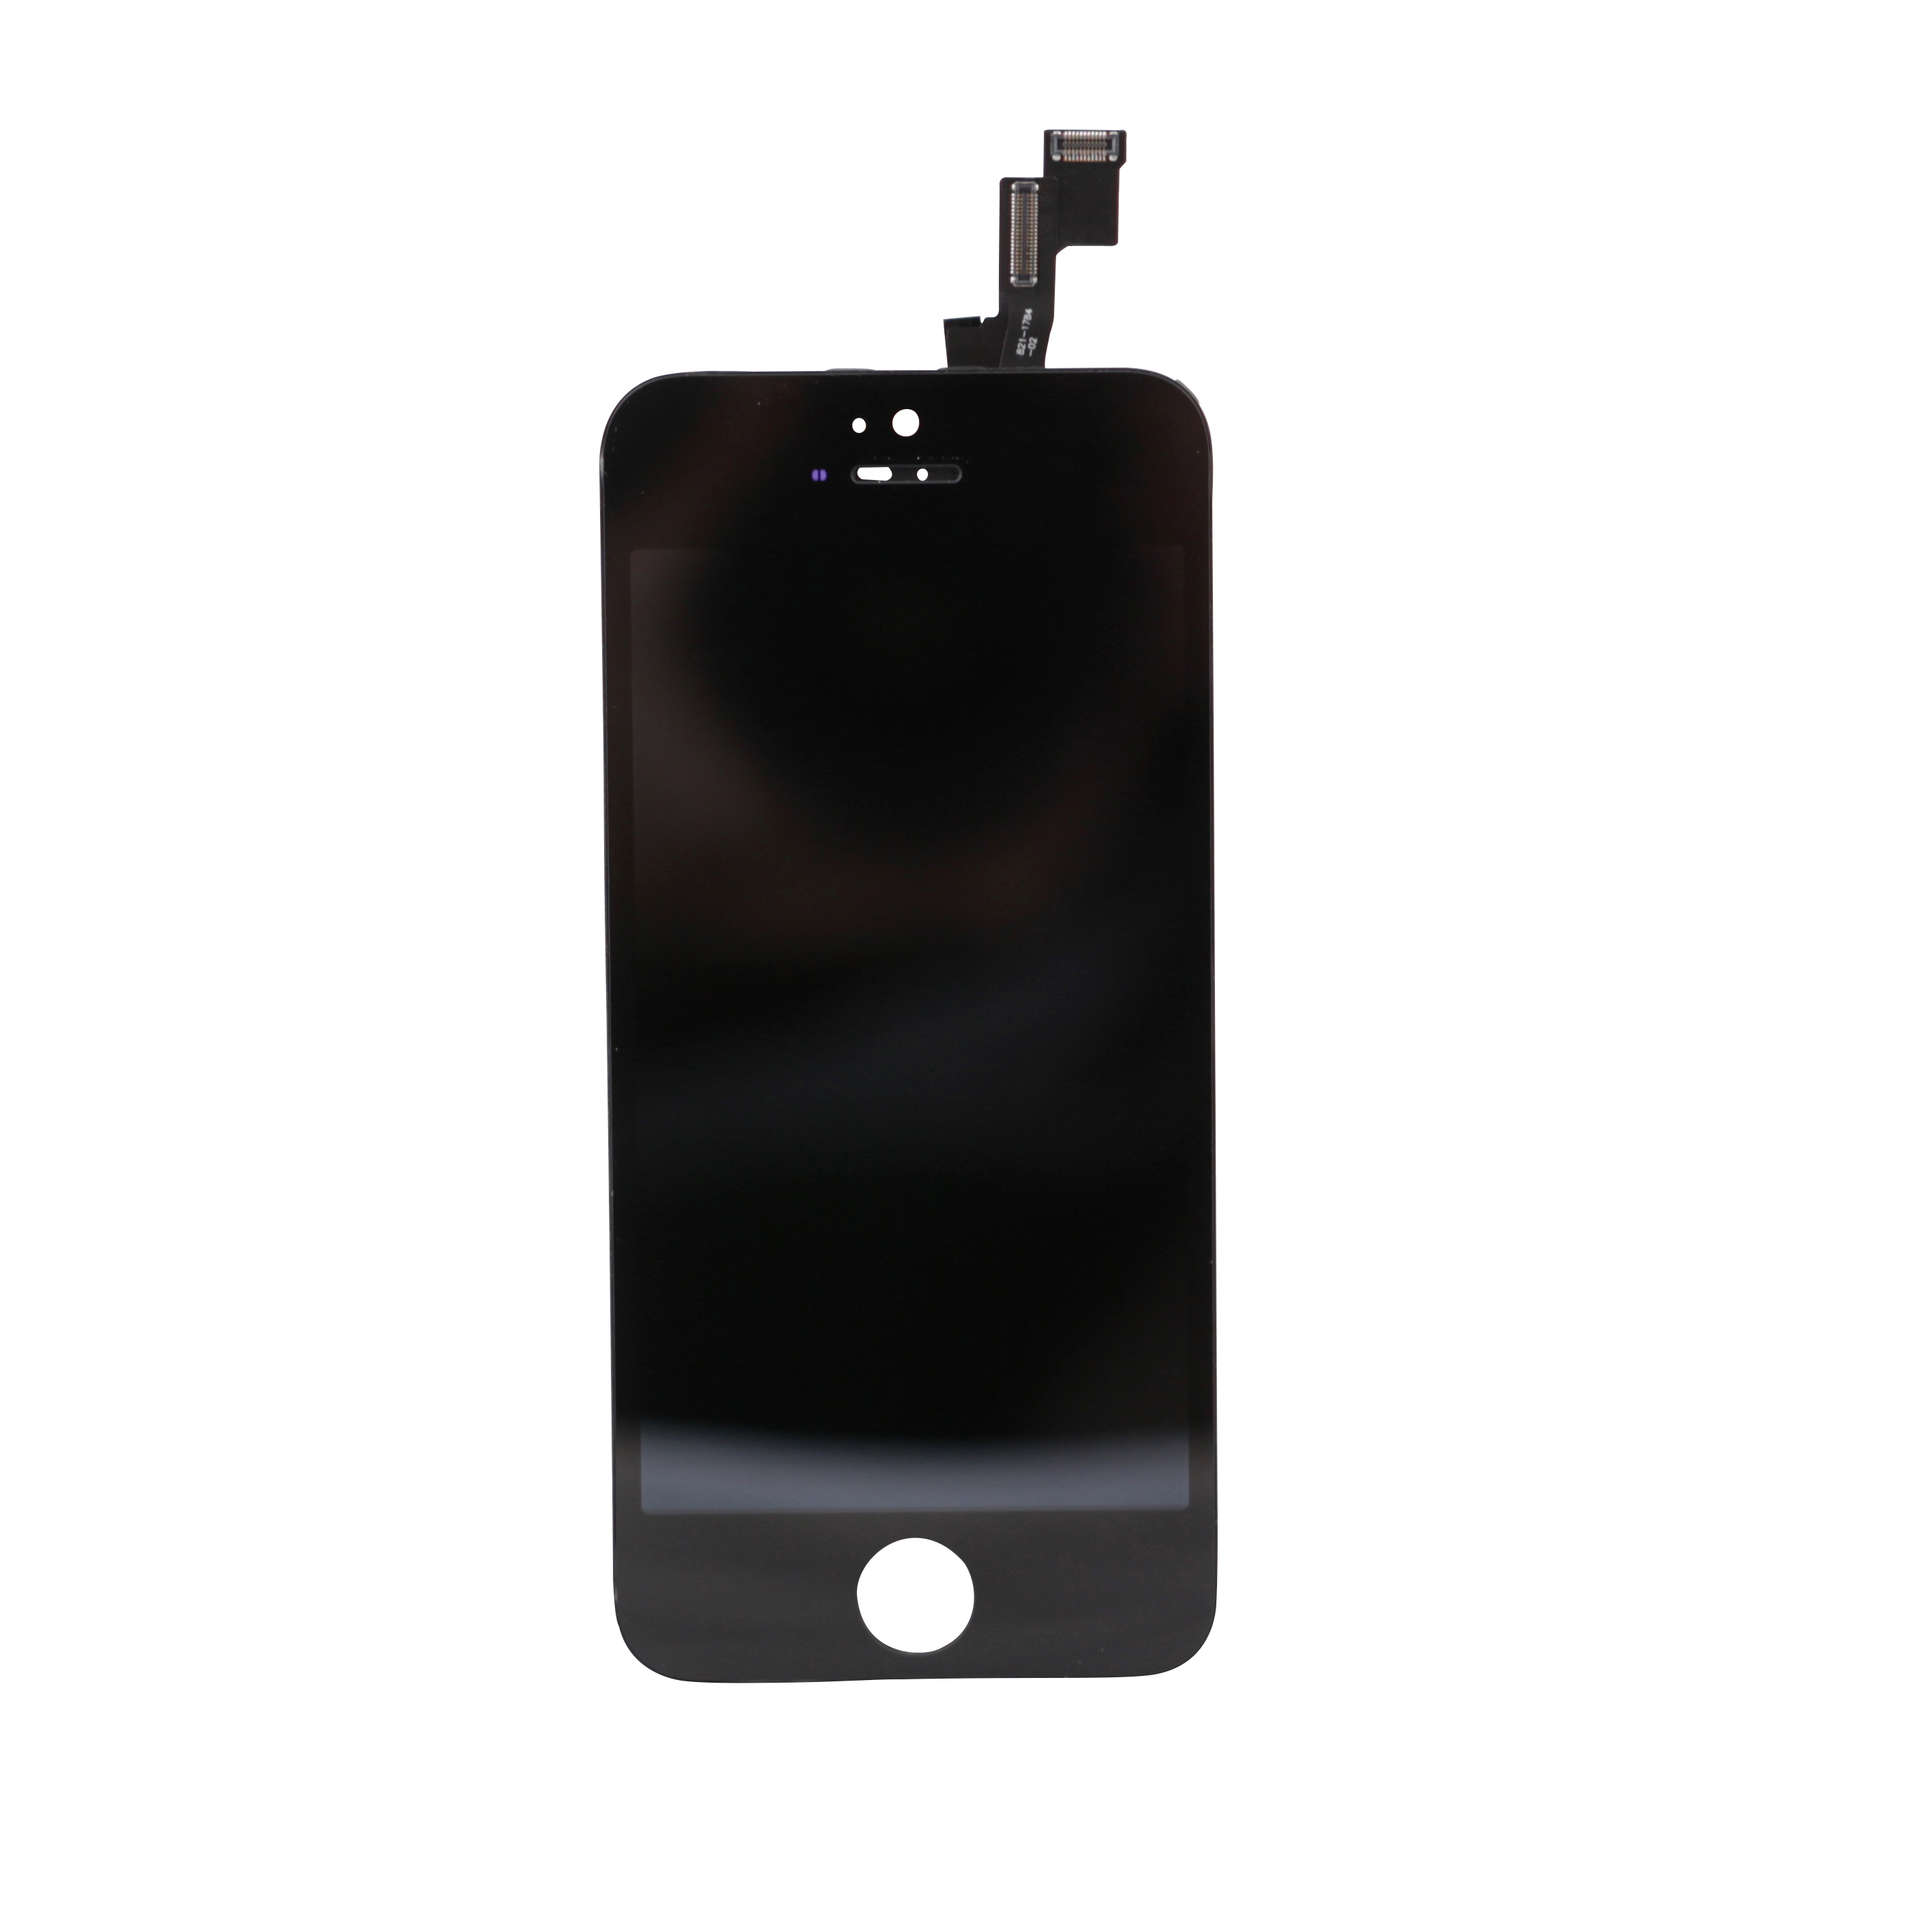 iPhone 5C Replacement Screen (Black)